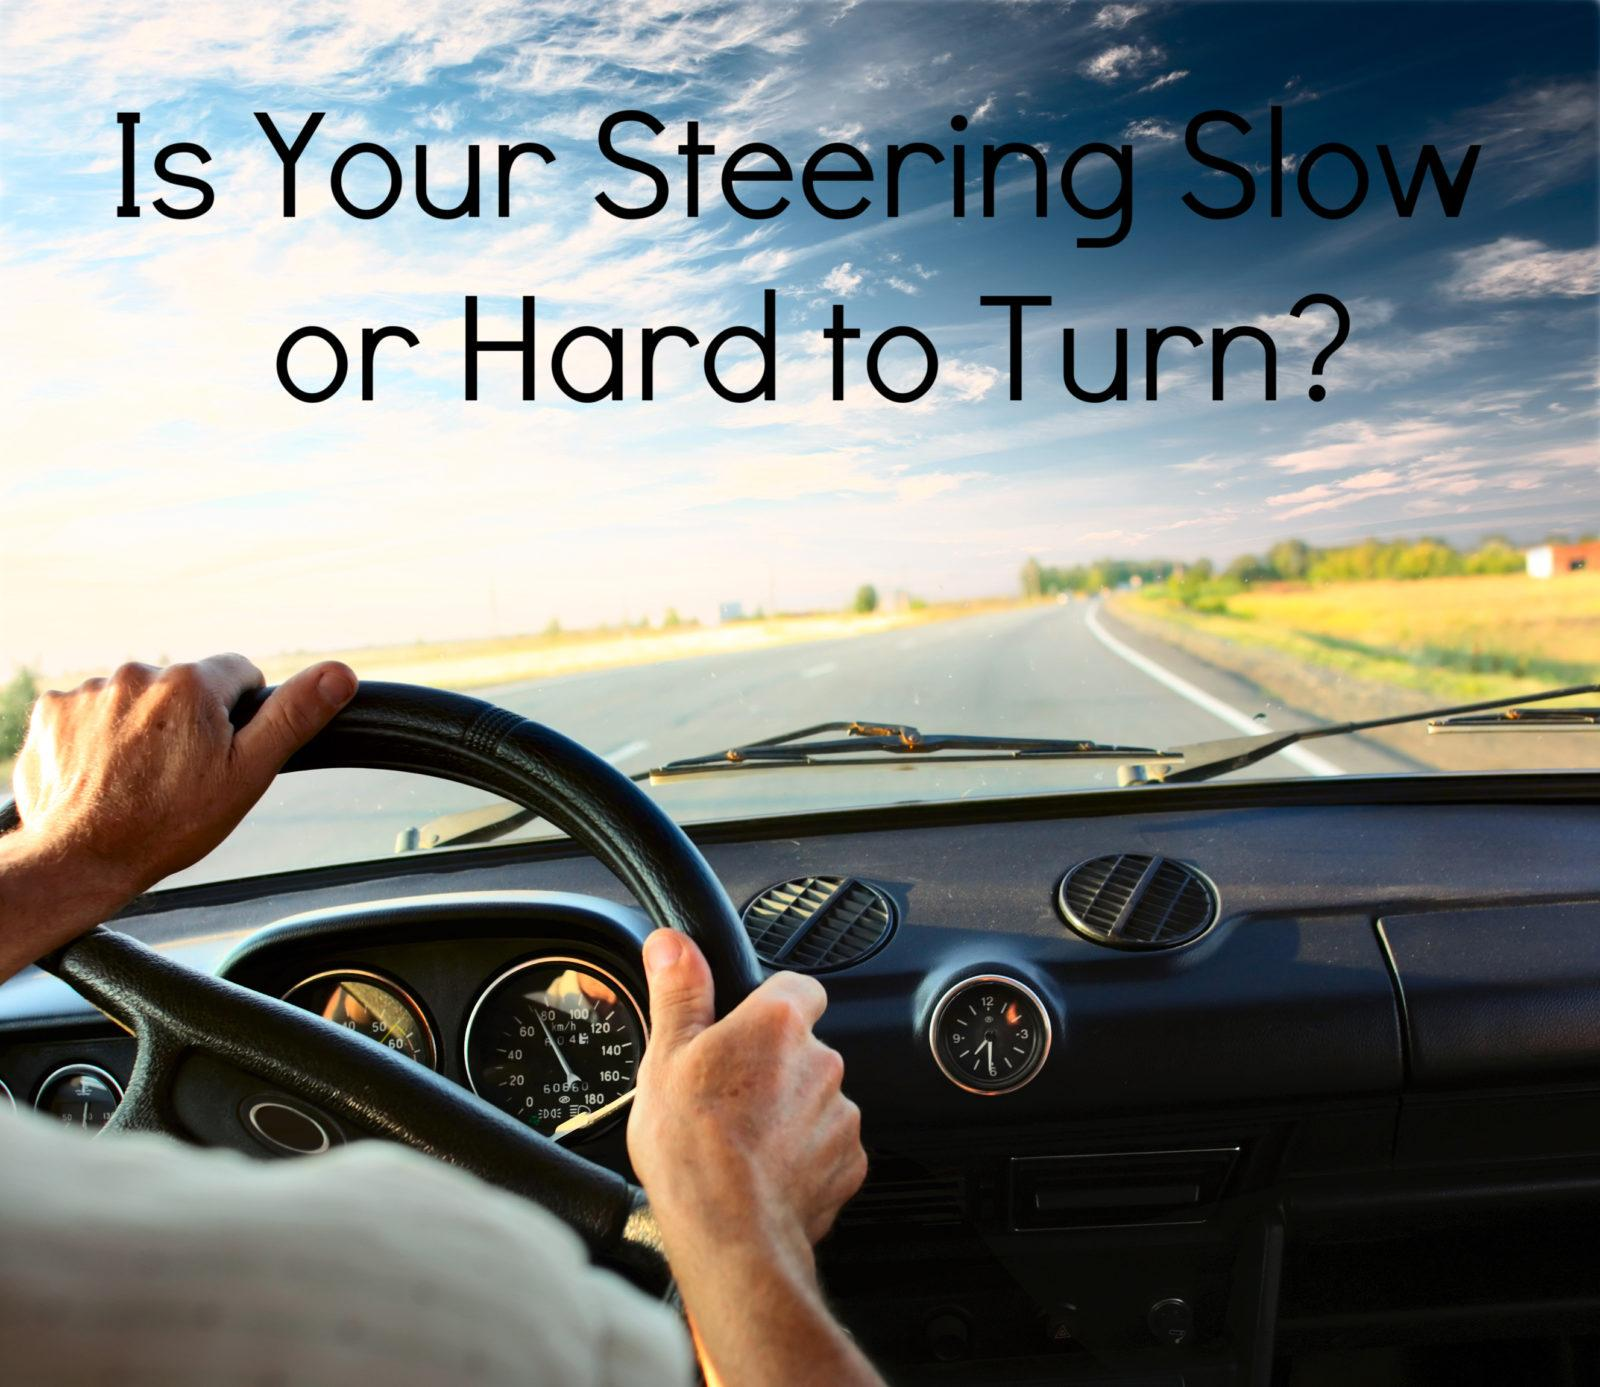 Is your steering slow or hard to turn?